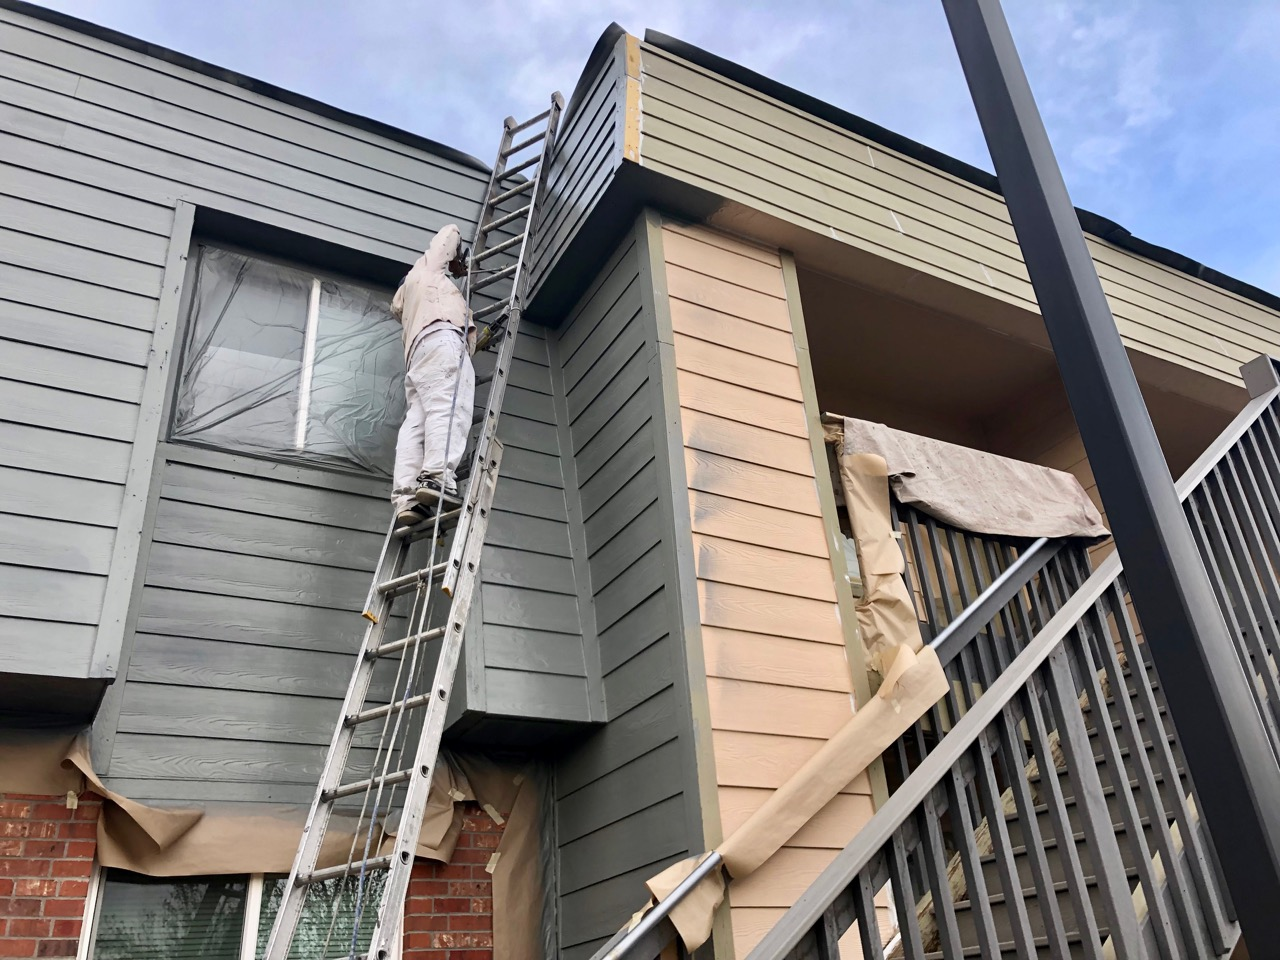 Repainting the trim at McGeorge Mountain Terrace